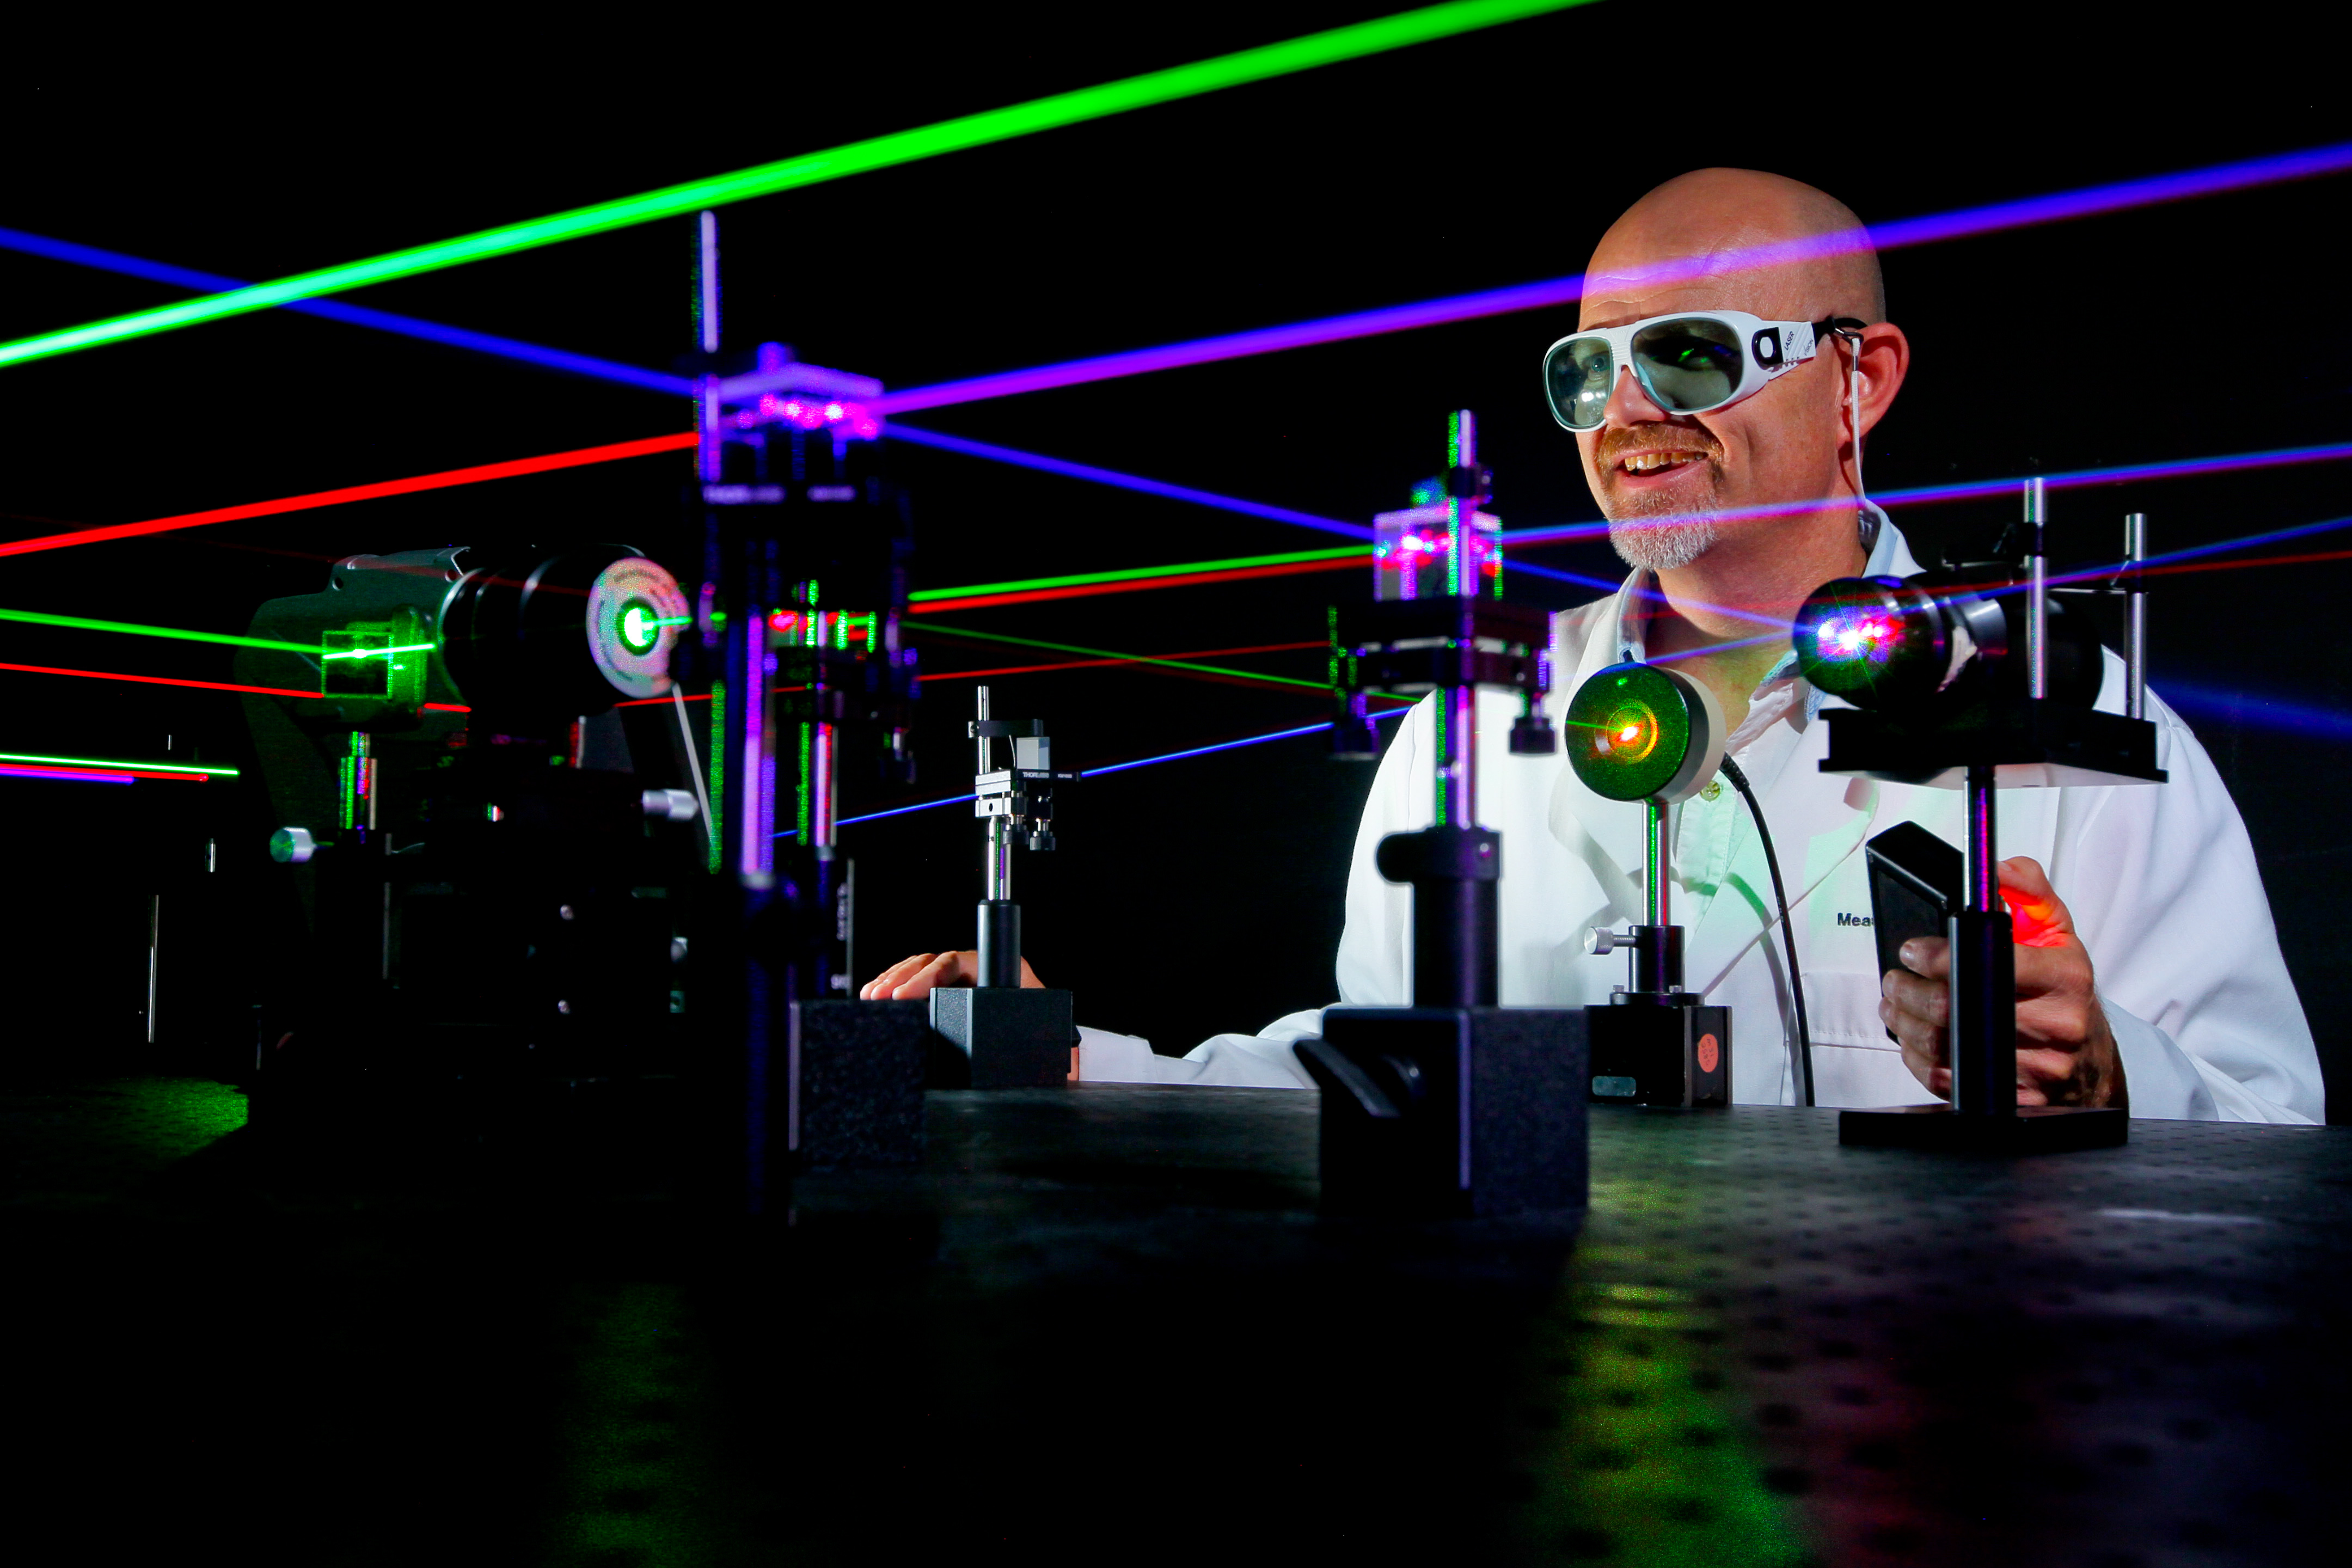 A microwave/electro-optic (MS32) electronics engineer at Naval Surface Warfare Center (NSWC), Corona Division, uses visible lasers to align various optical components on Aug. 29, 2014. US Navy Photo